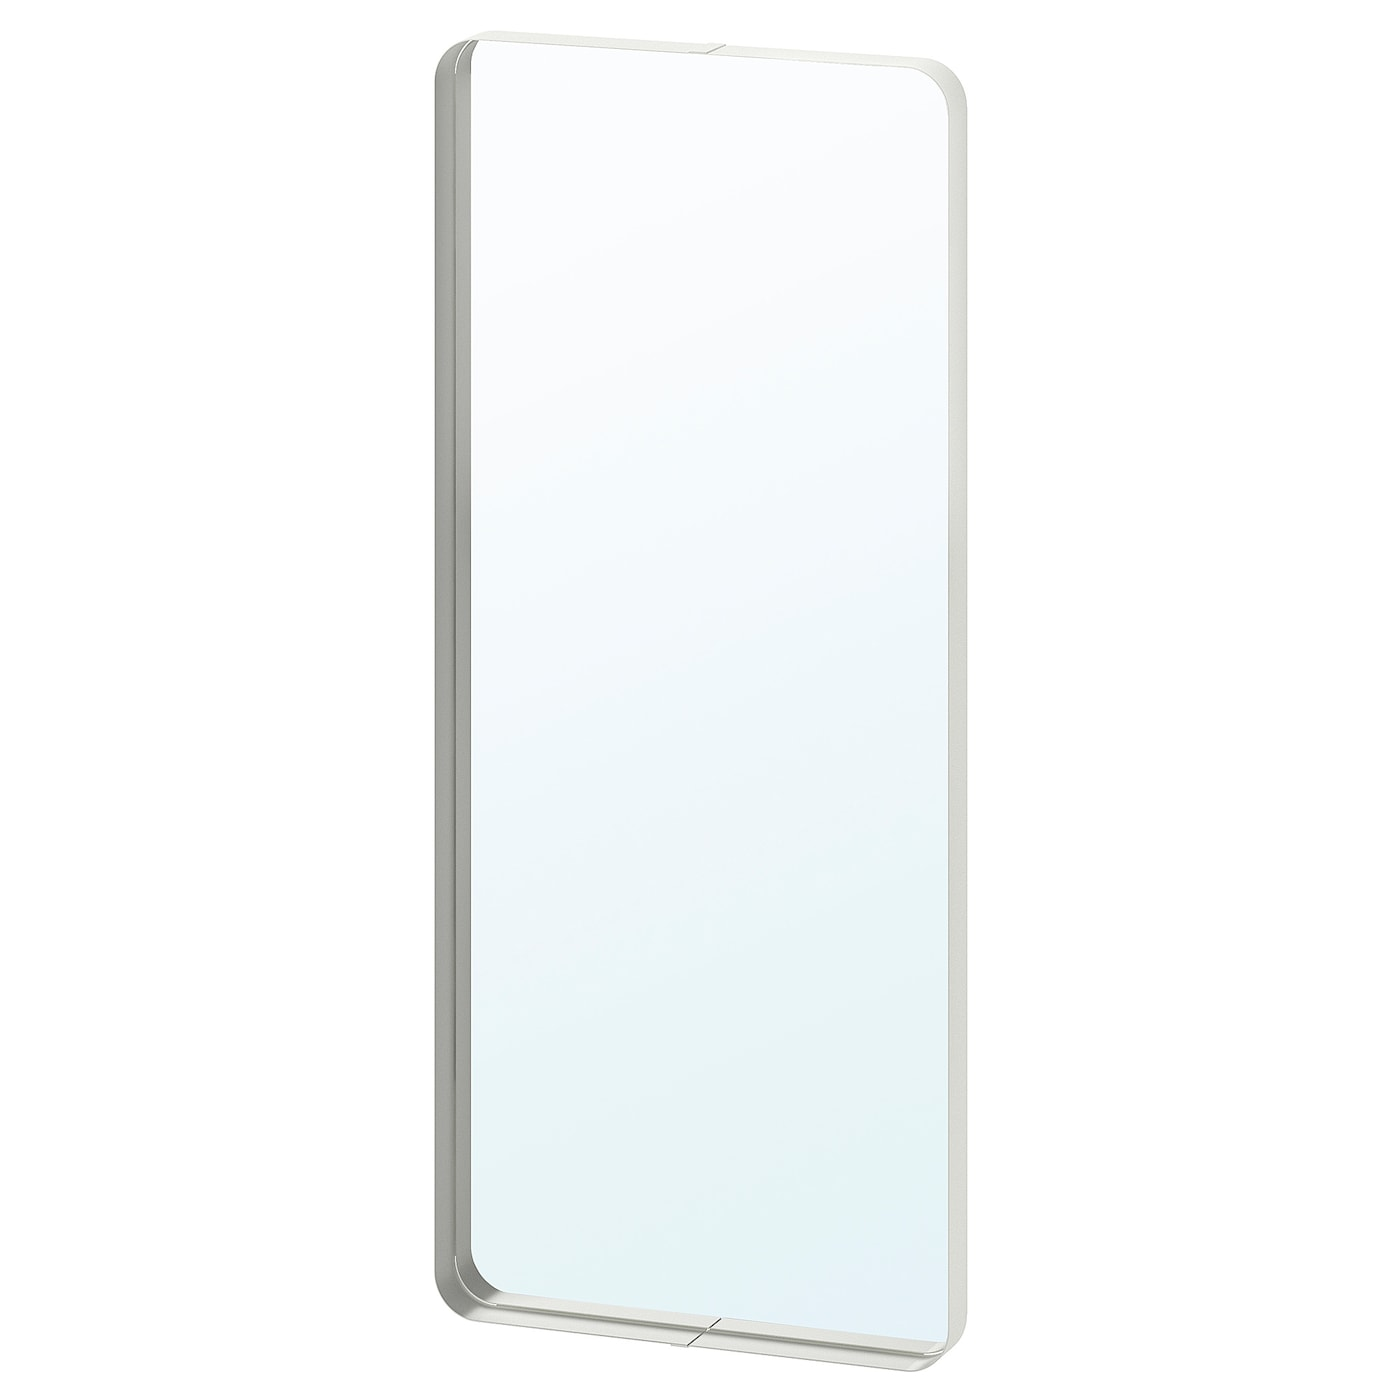 IKEA ALGOT mirror with bracket Just click in on ALGOT wall upright – no tools needed.